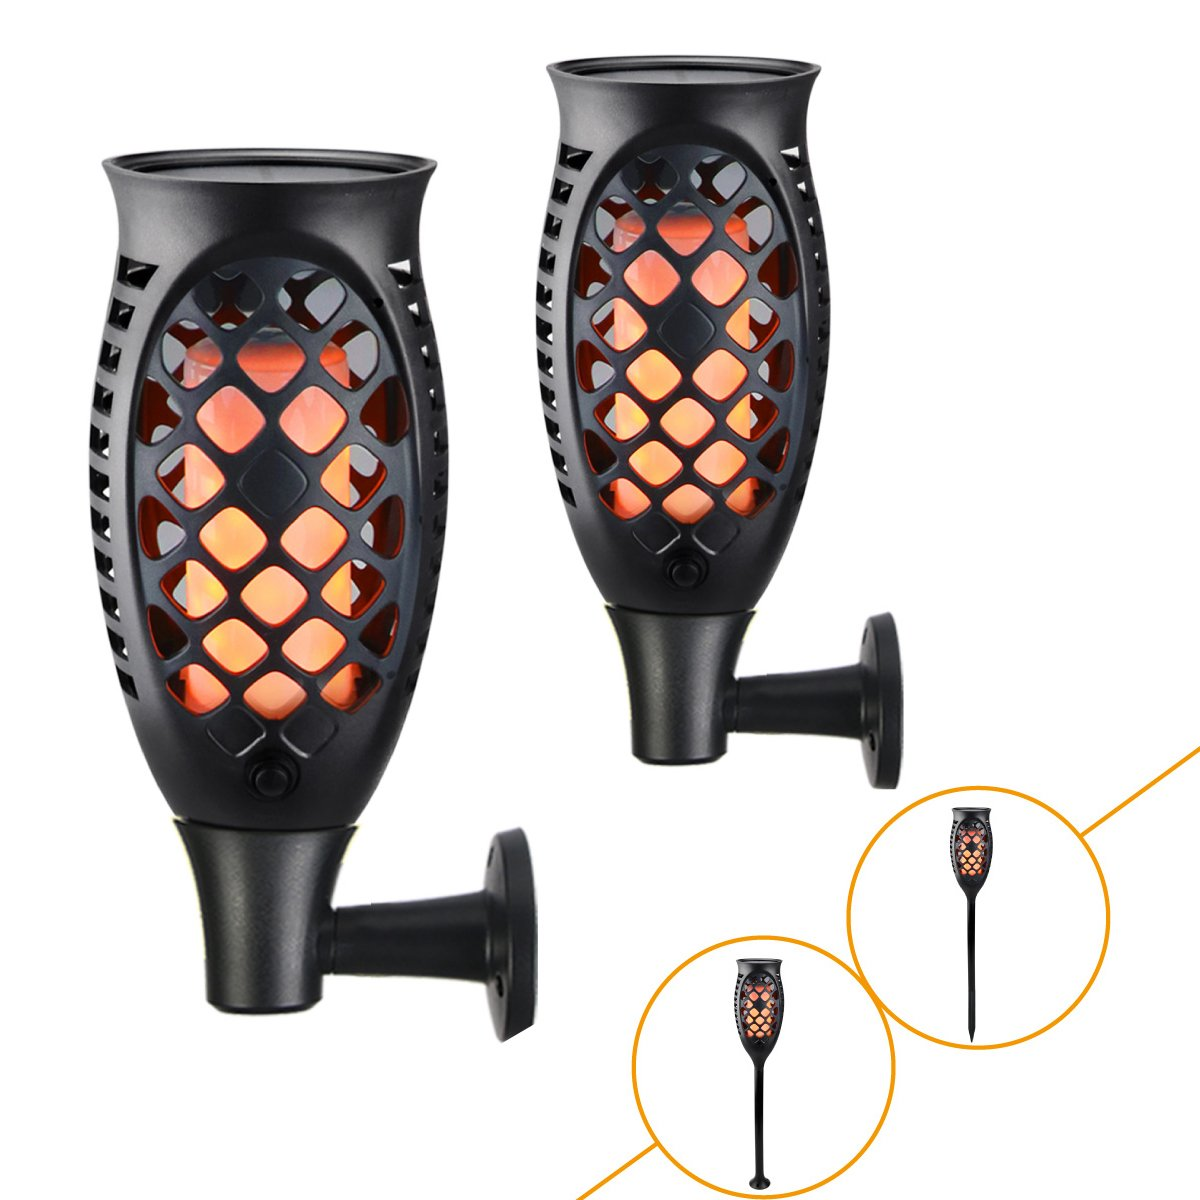 Juhefa Solar Lights Outdoor [2018 Upgraded] 99LED Flickering Flames Torches Lights Waterproof 3 Working Modes & 3 Installation Ways Auto On/Off Dusk to Dawn Garden Decorations Pathway Deck (2 Pack)